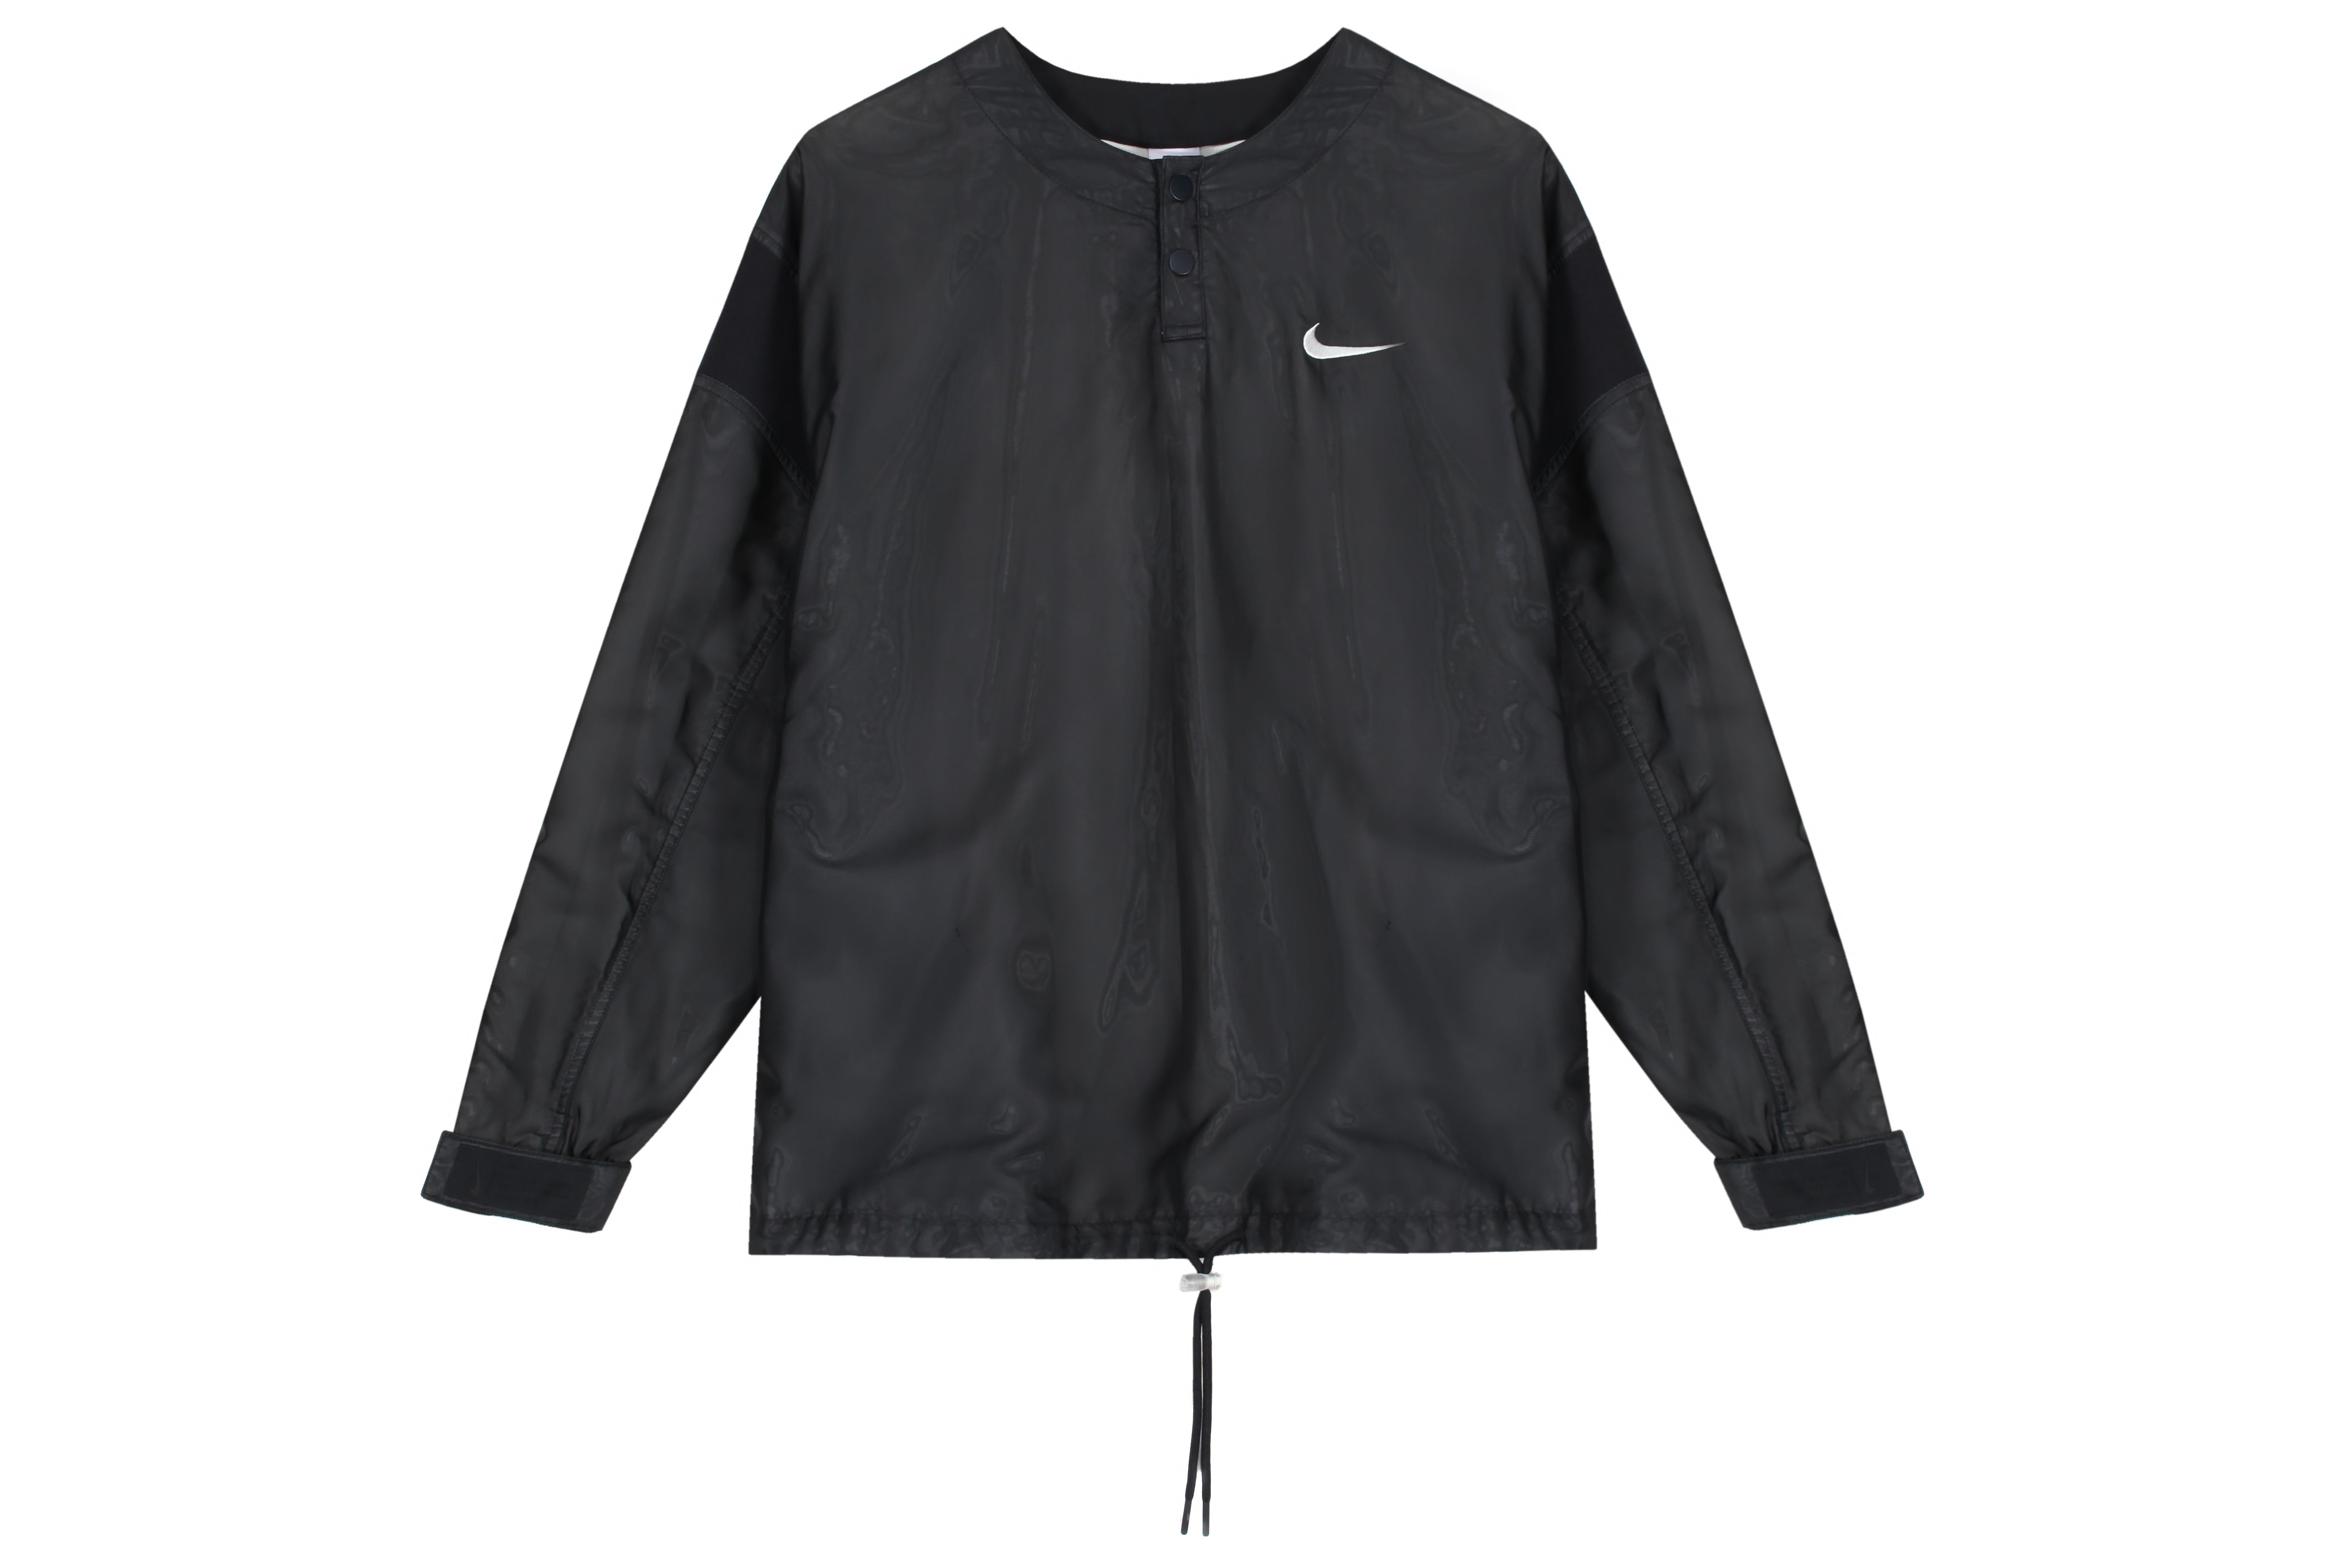 Nike NRG LS Henley x Fear of God